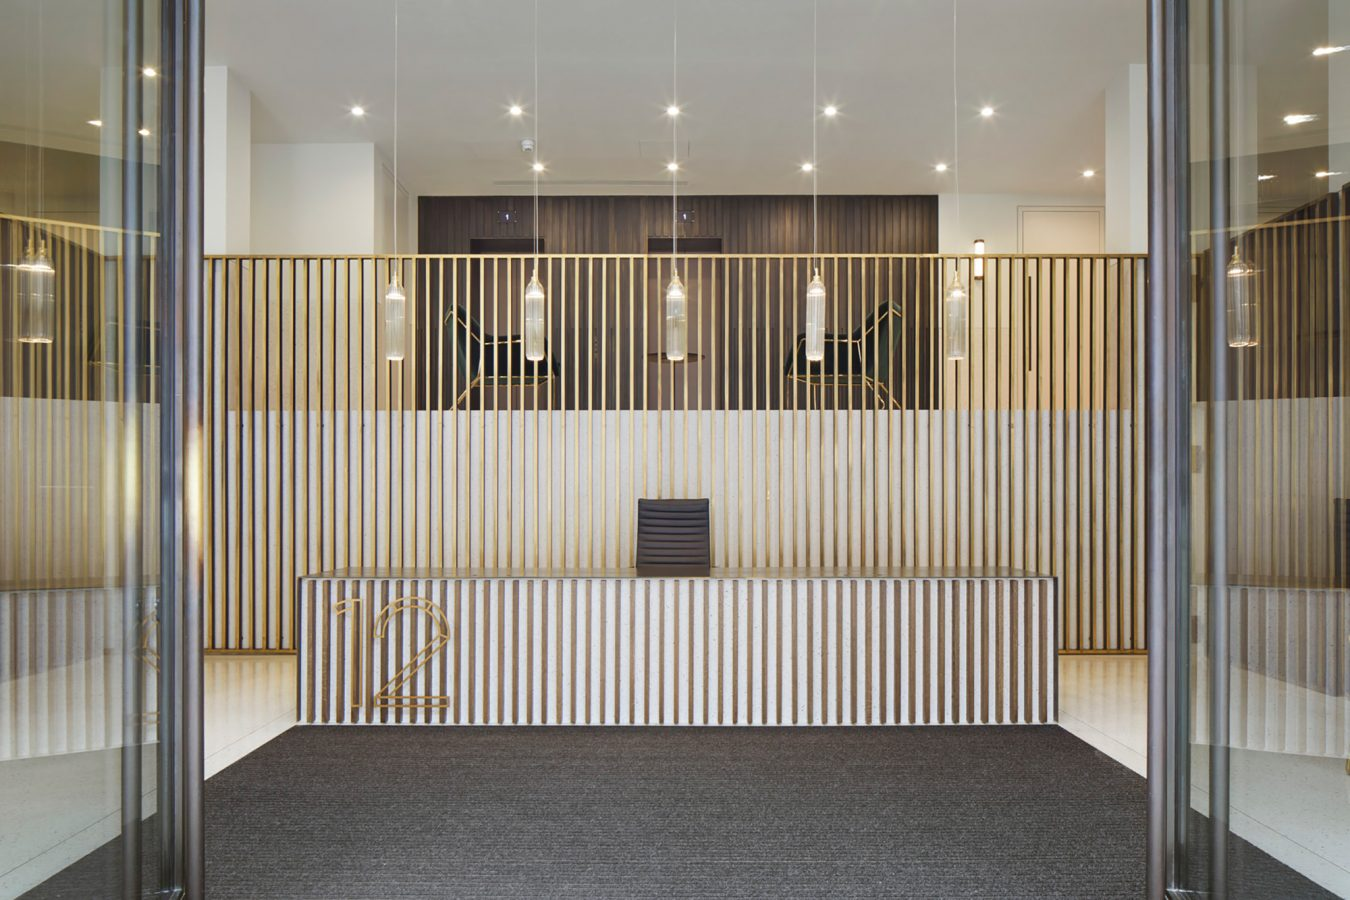 Gough Square reception refurbishment with fine joinery works and industrial style lightning created in collaboration with DMFK Architects.